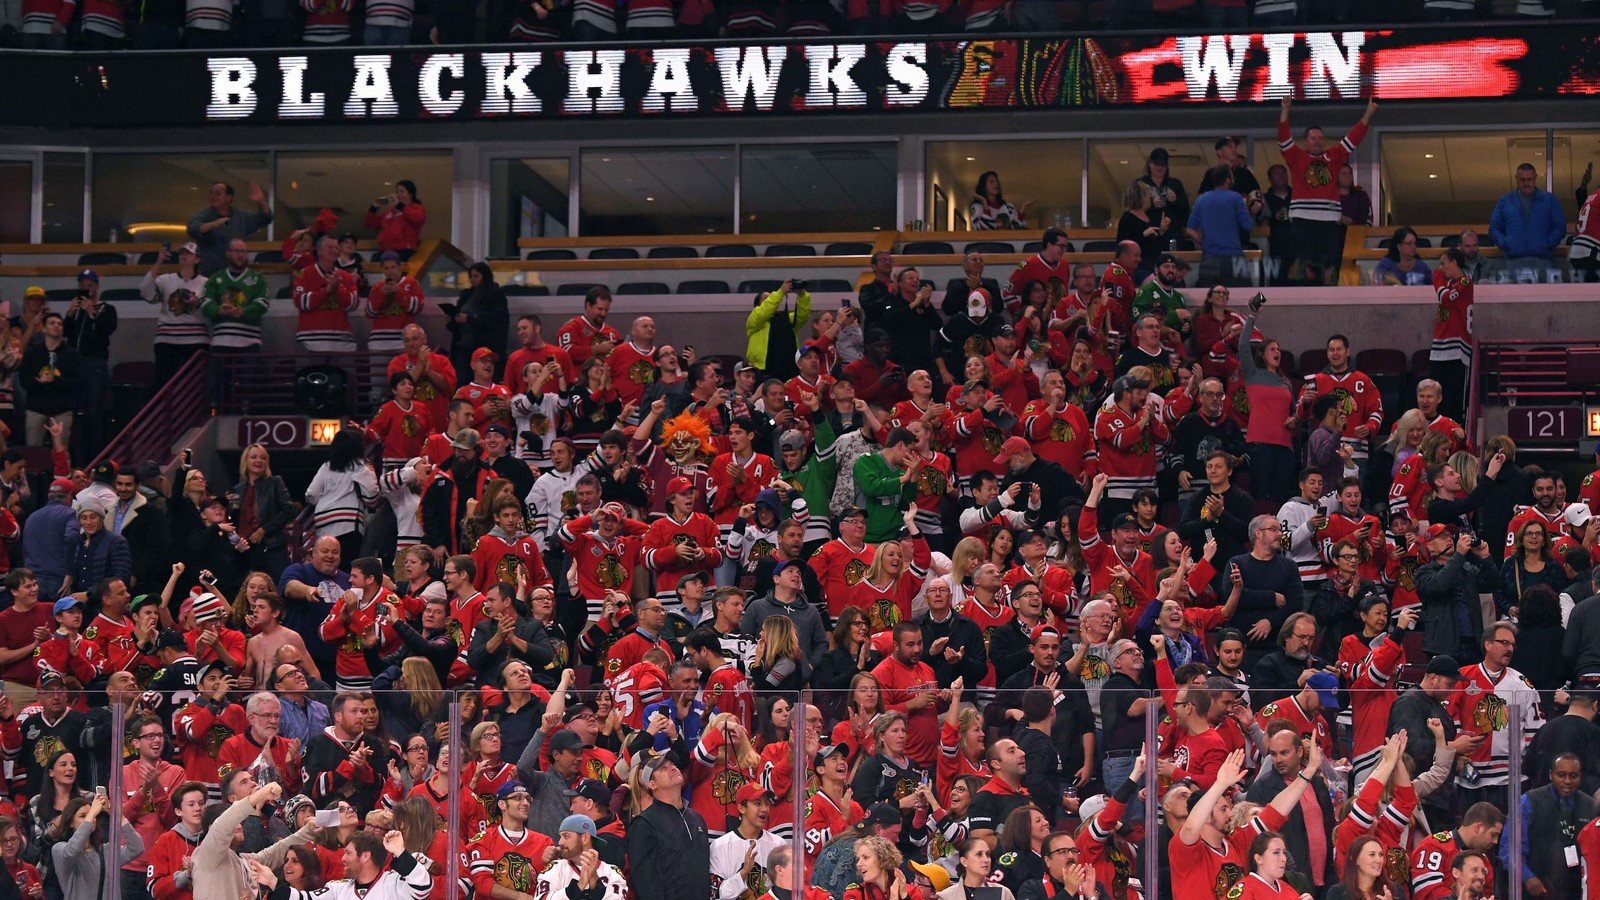 Blackhawks Ban 4 Fans From Home Games for Racist Taunt